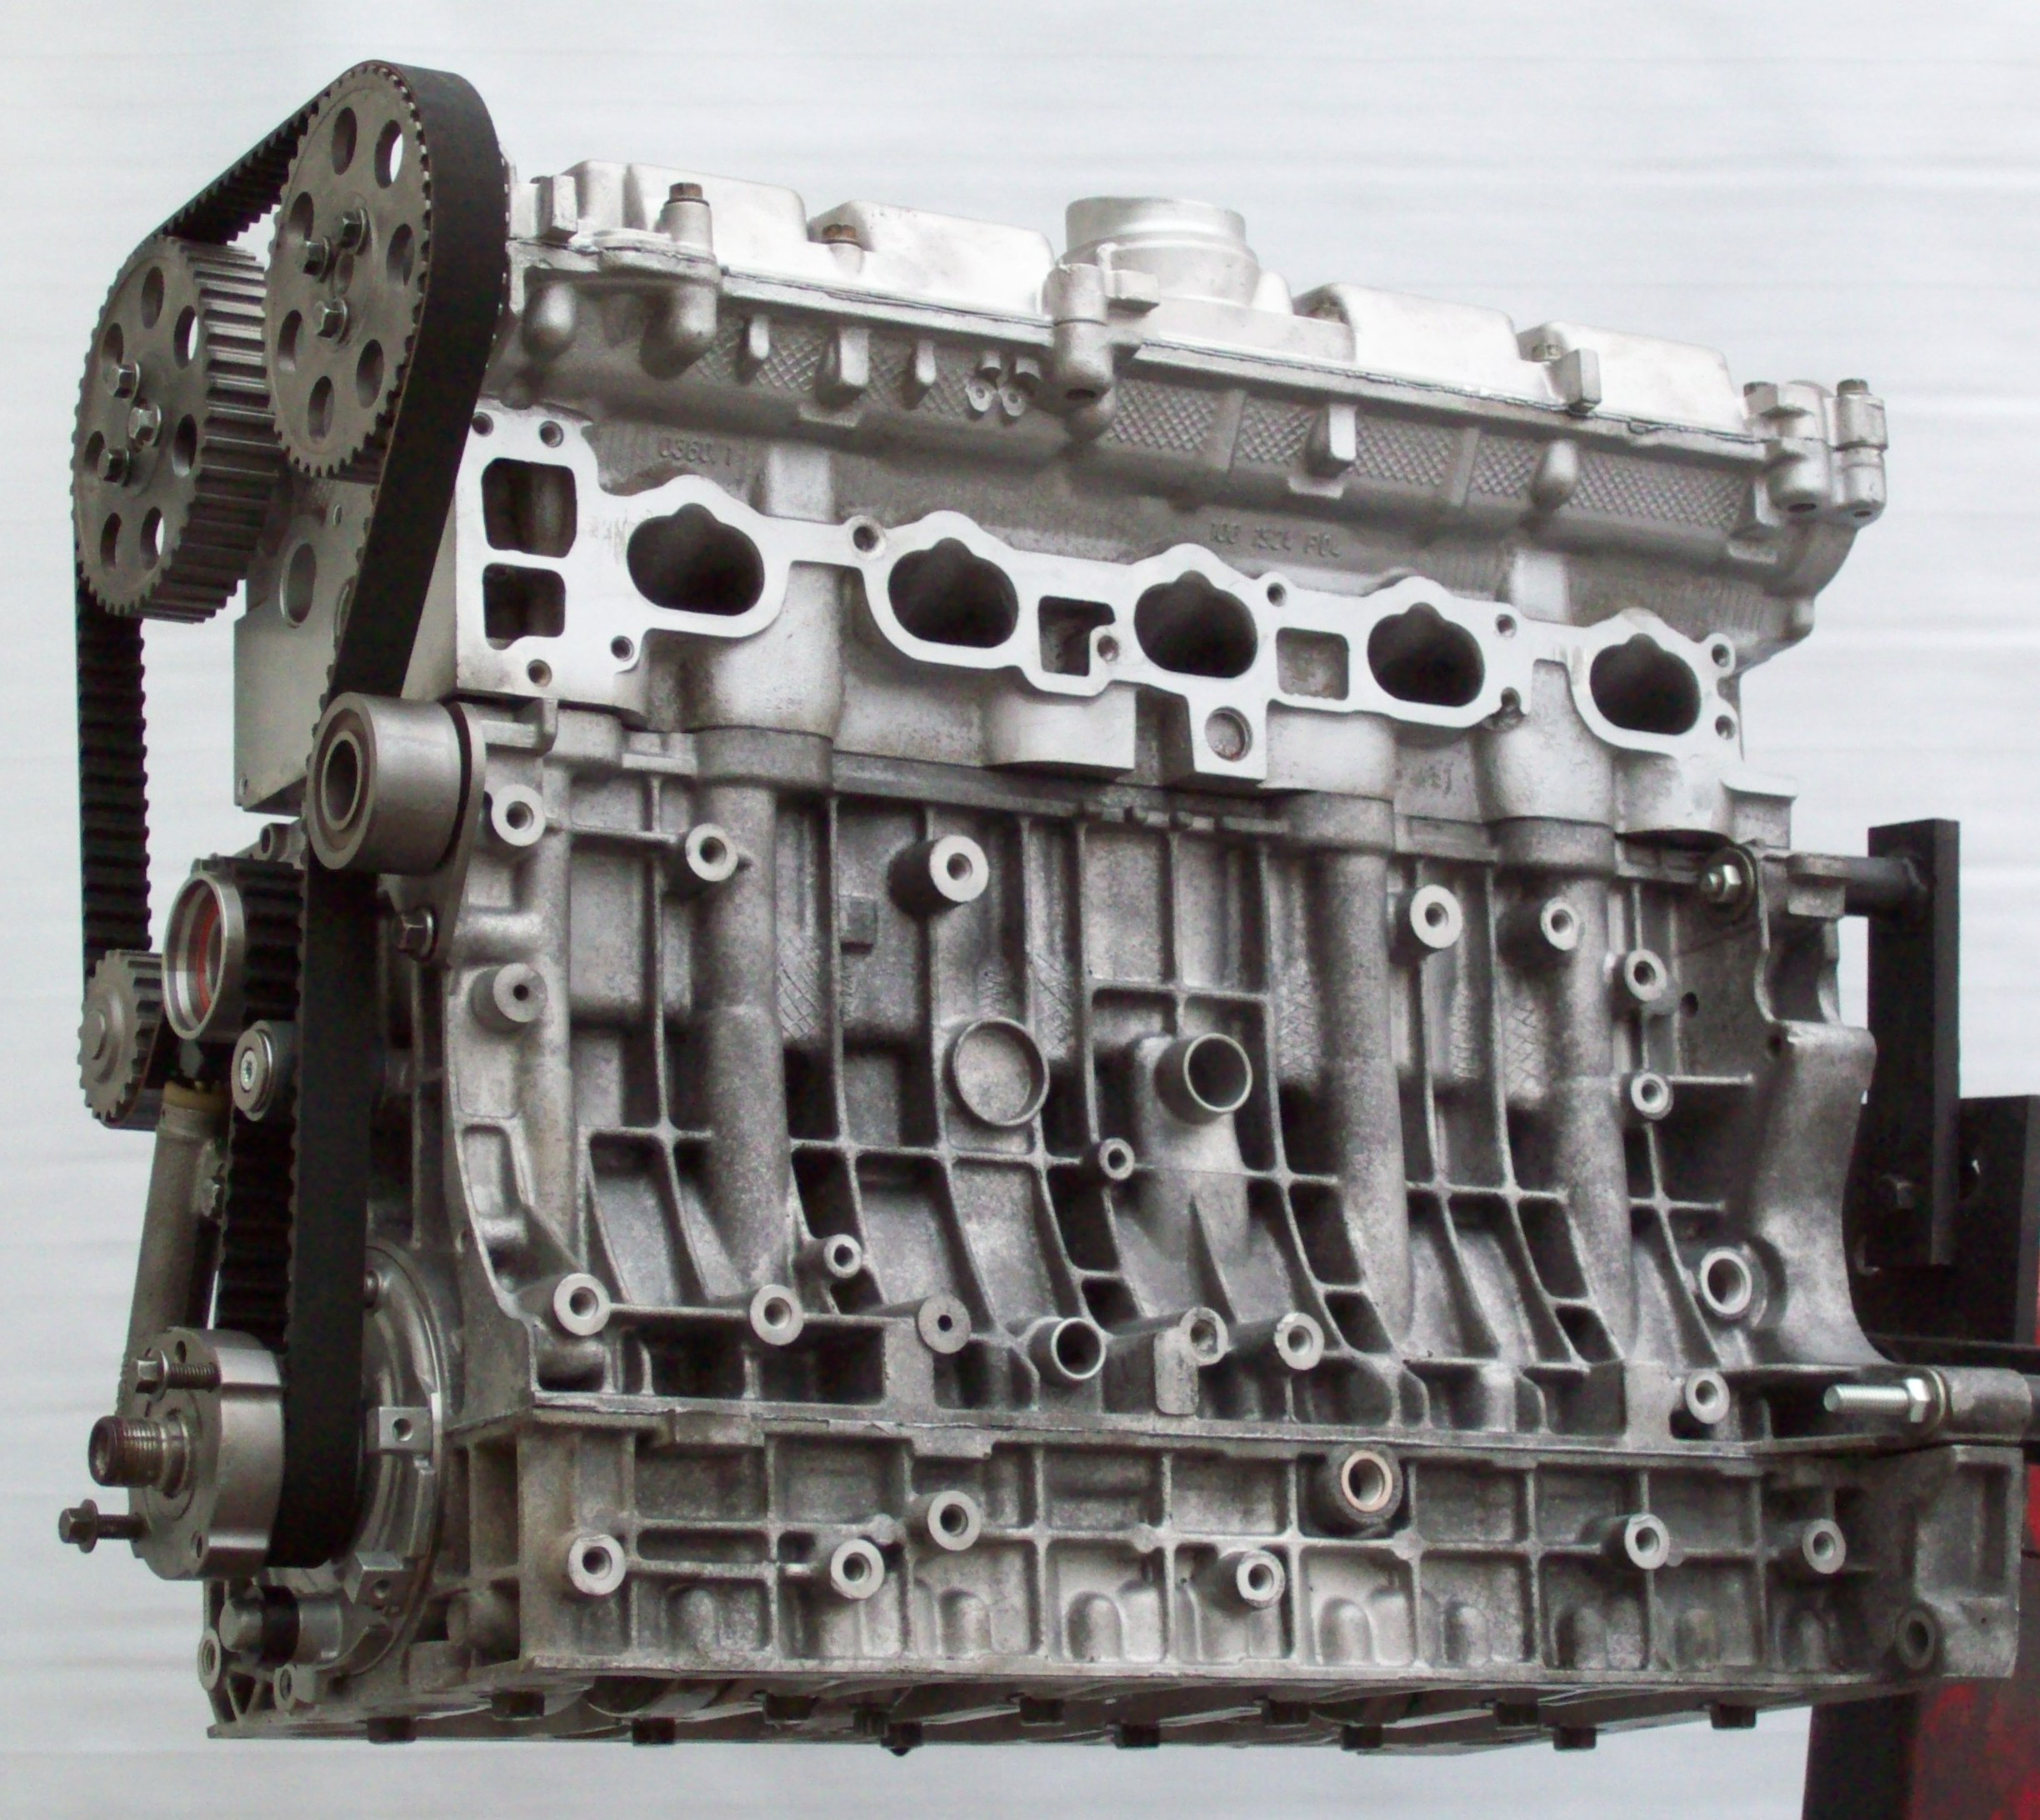 Volvo Remanufactured Engines Ask For Rebuilt And New Too